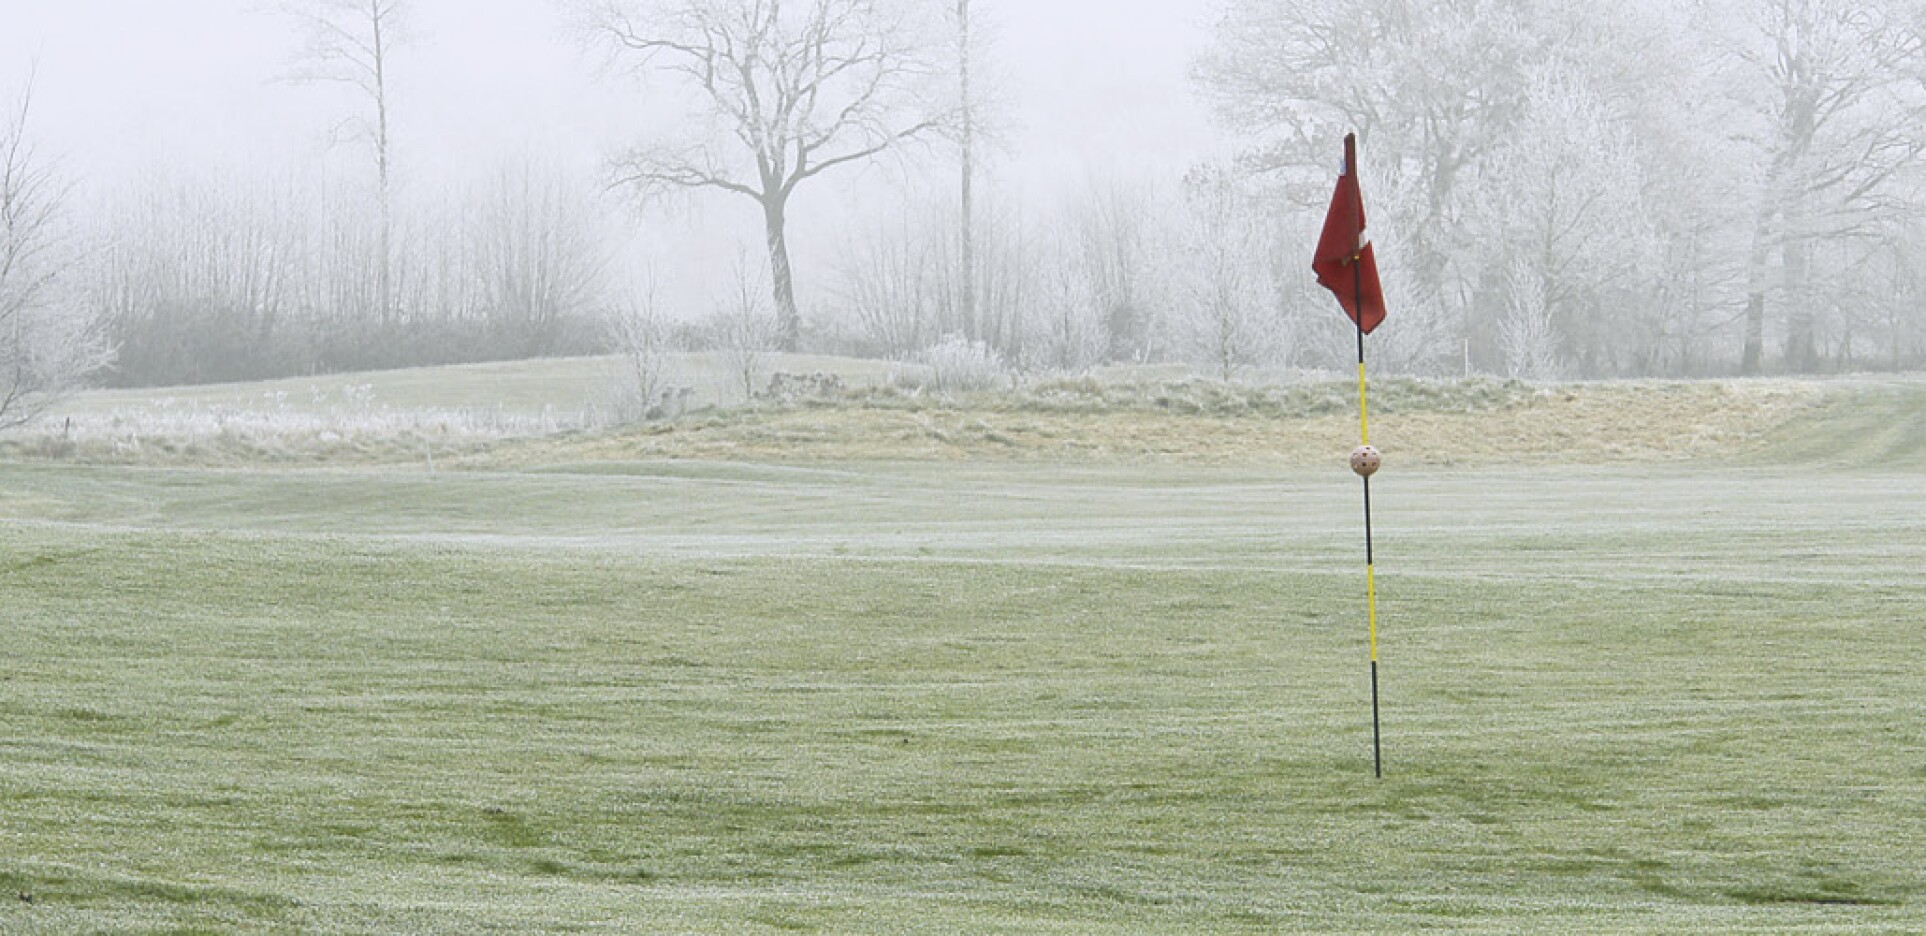 Golf Course Flag in Hole on Winter Course with Snow